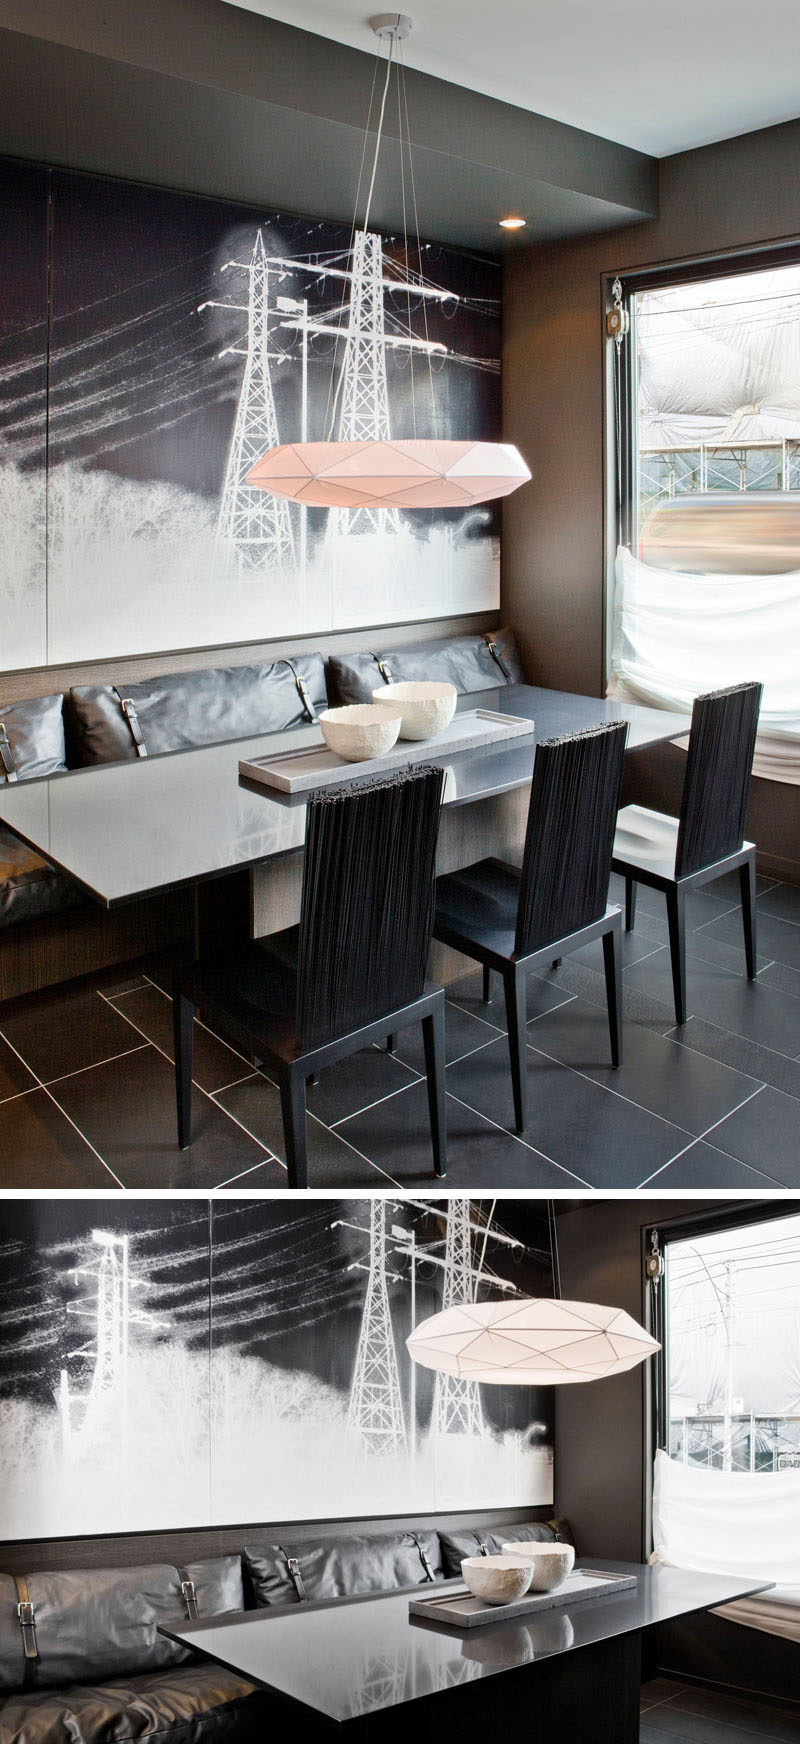 dining room design idea - use built-in banquette seating to save